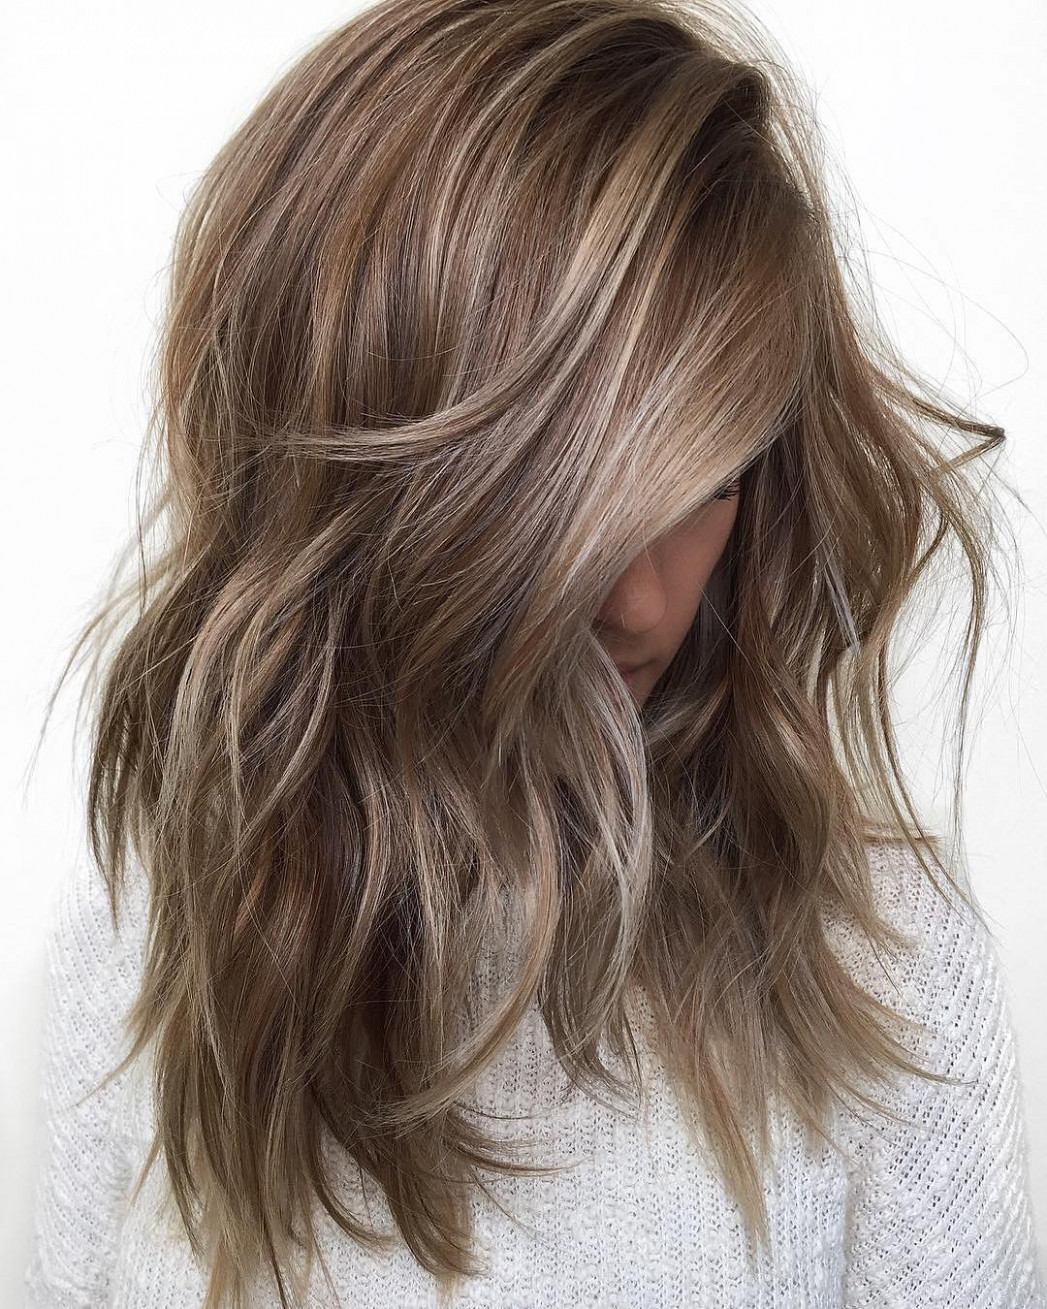 Balayage ombre hair styles for shoulder length hair nicestyles shoulder length balayage